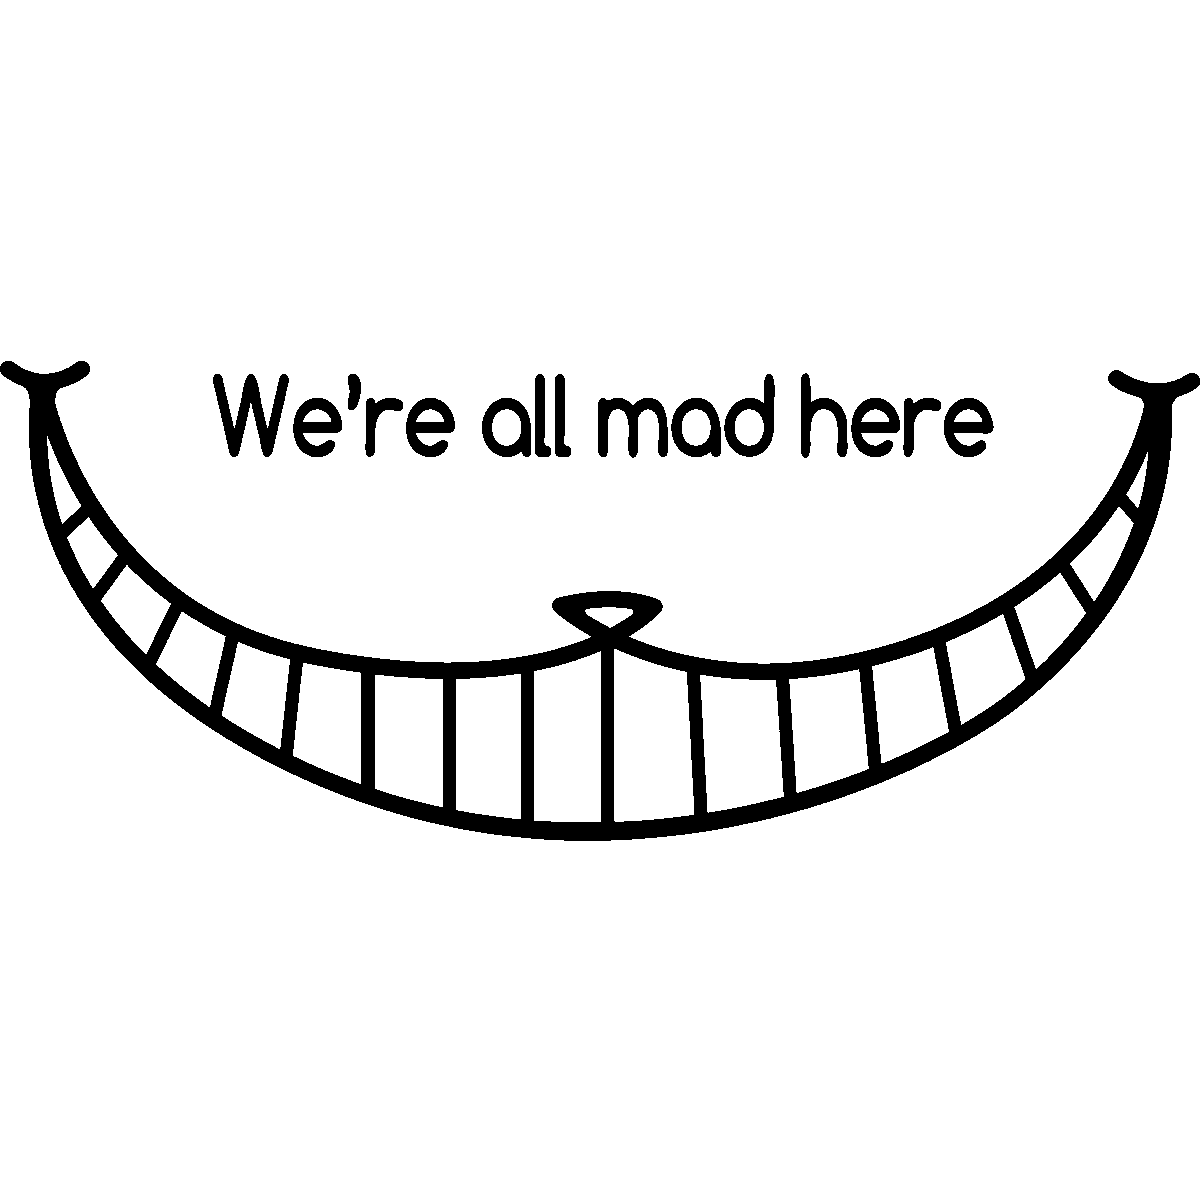 Cheshire cat tail clipart banner black and white library 28+ Collection of Cheshire Cat Smile Drawing | High quality, free ... banner black and white library